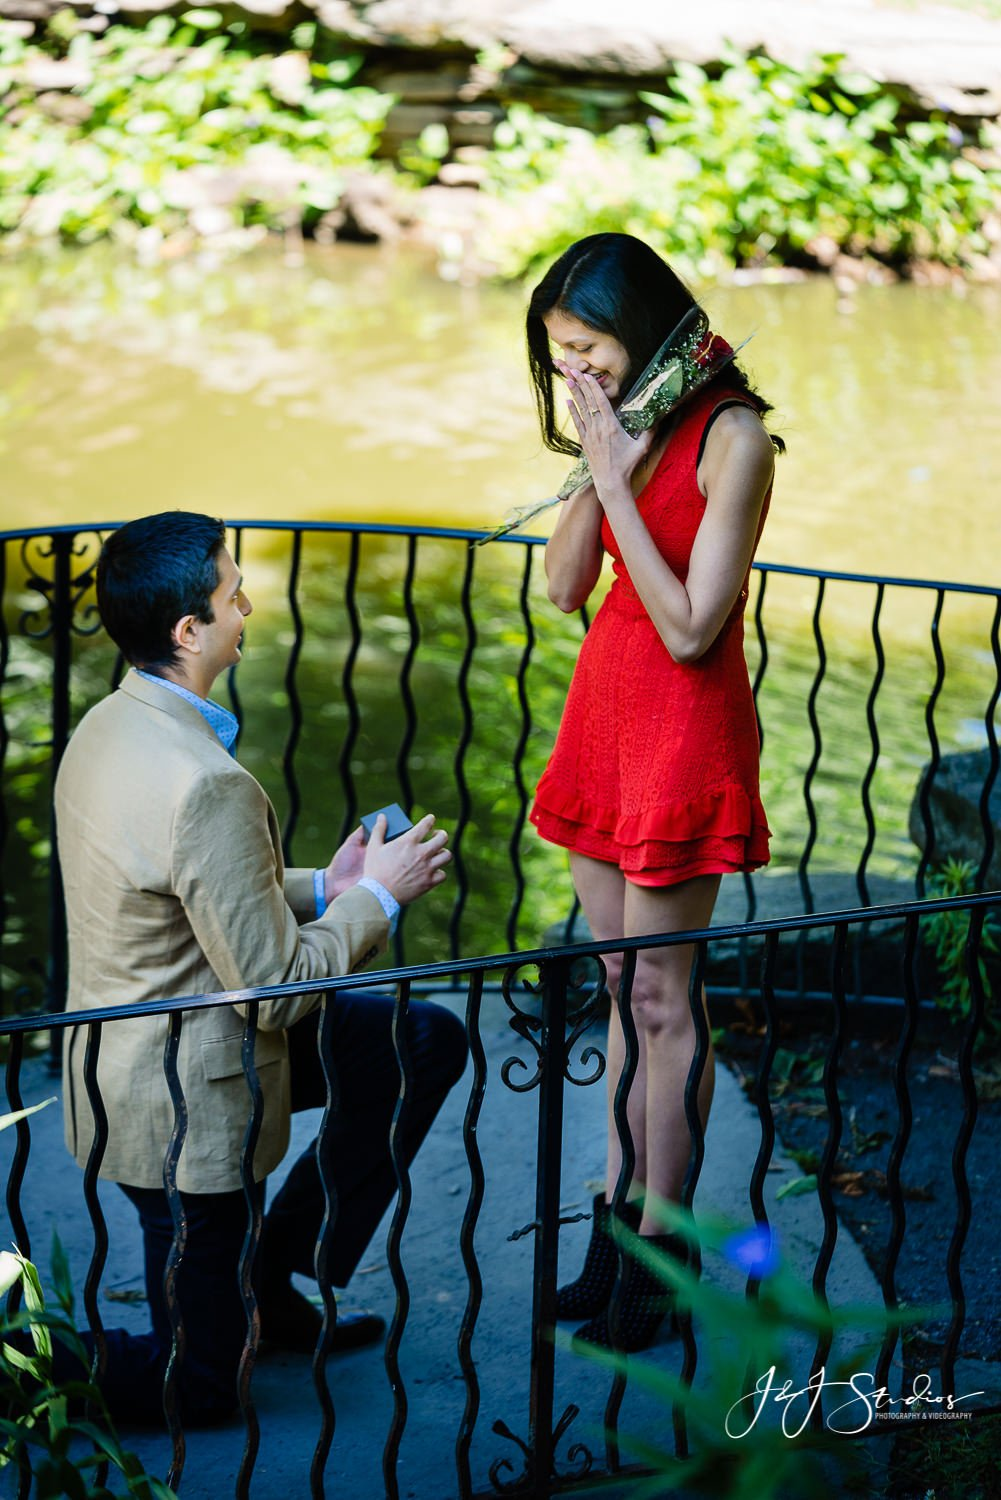 Surpise proposal engagement with ring kneeling down